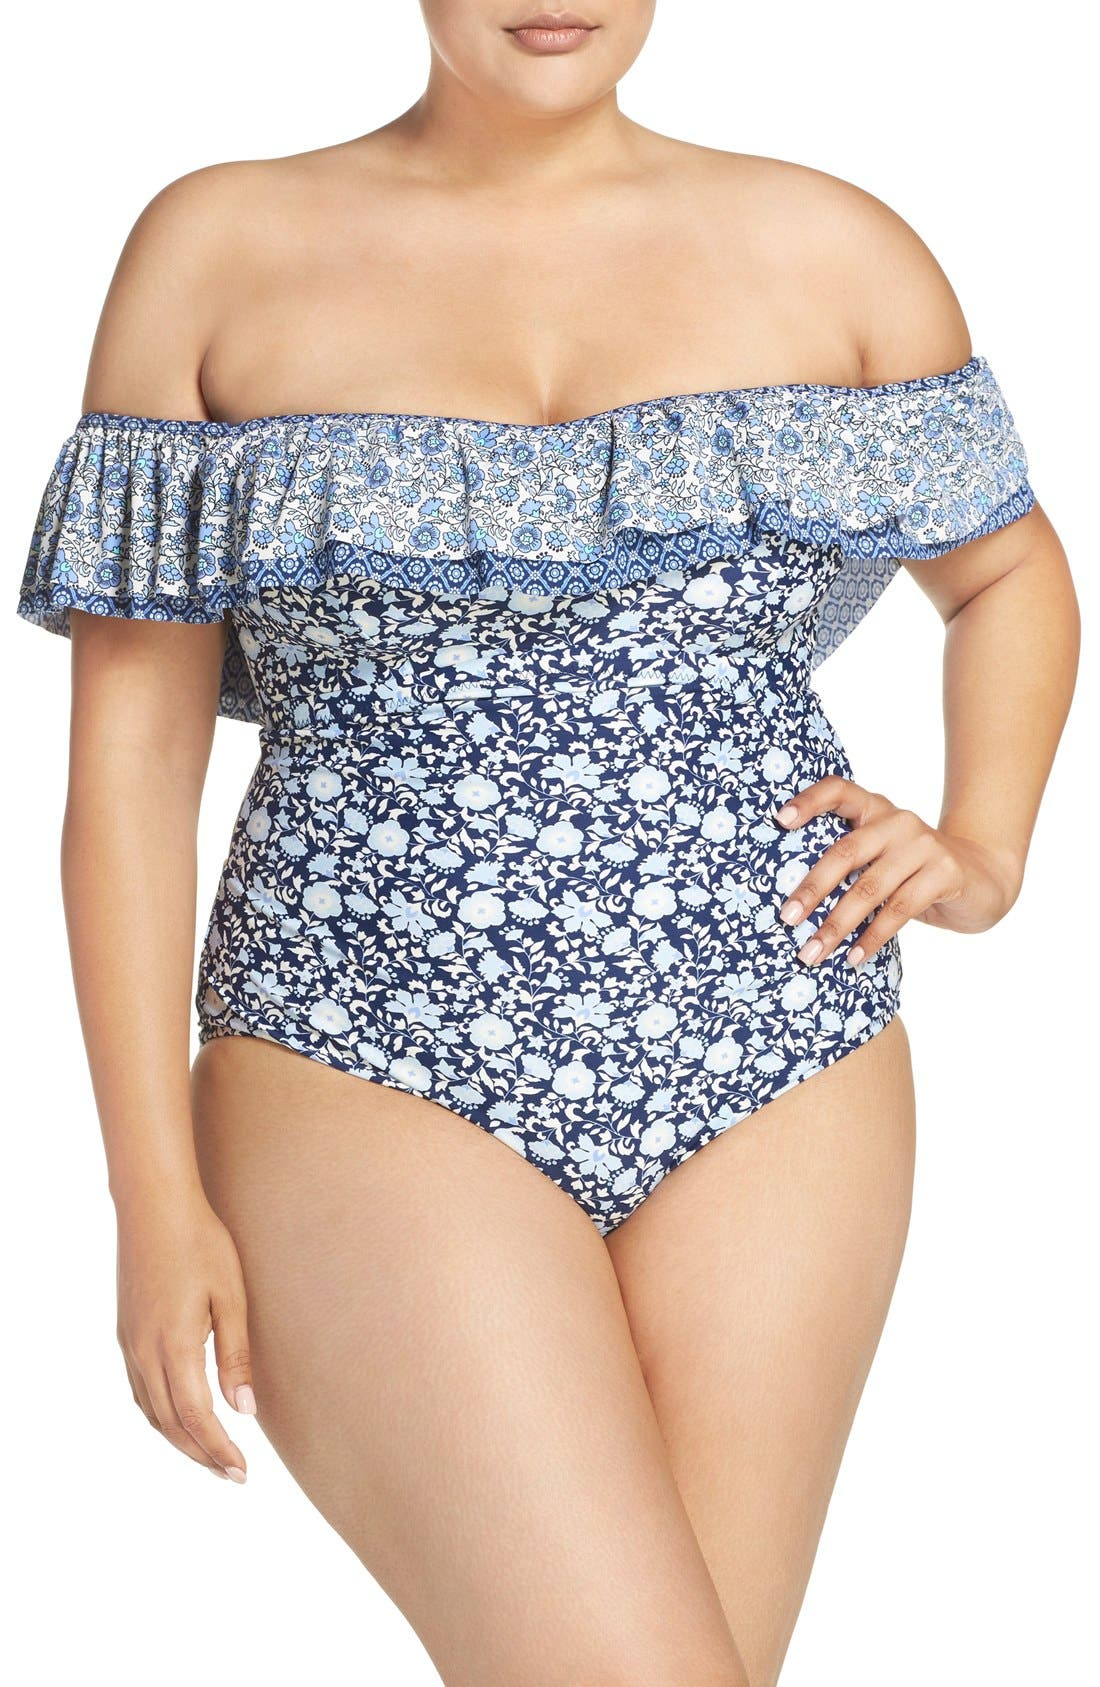 Alternate Image 1 Selected - Jessica Simpson Off the Shoulder One-Piece Swimsuit (Plus Size)